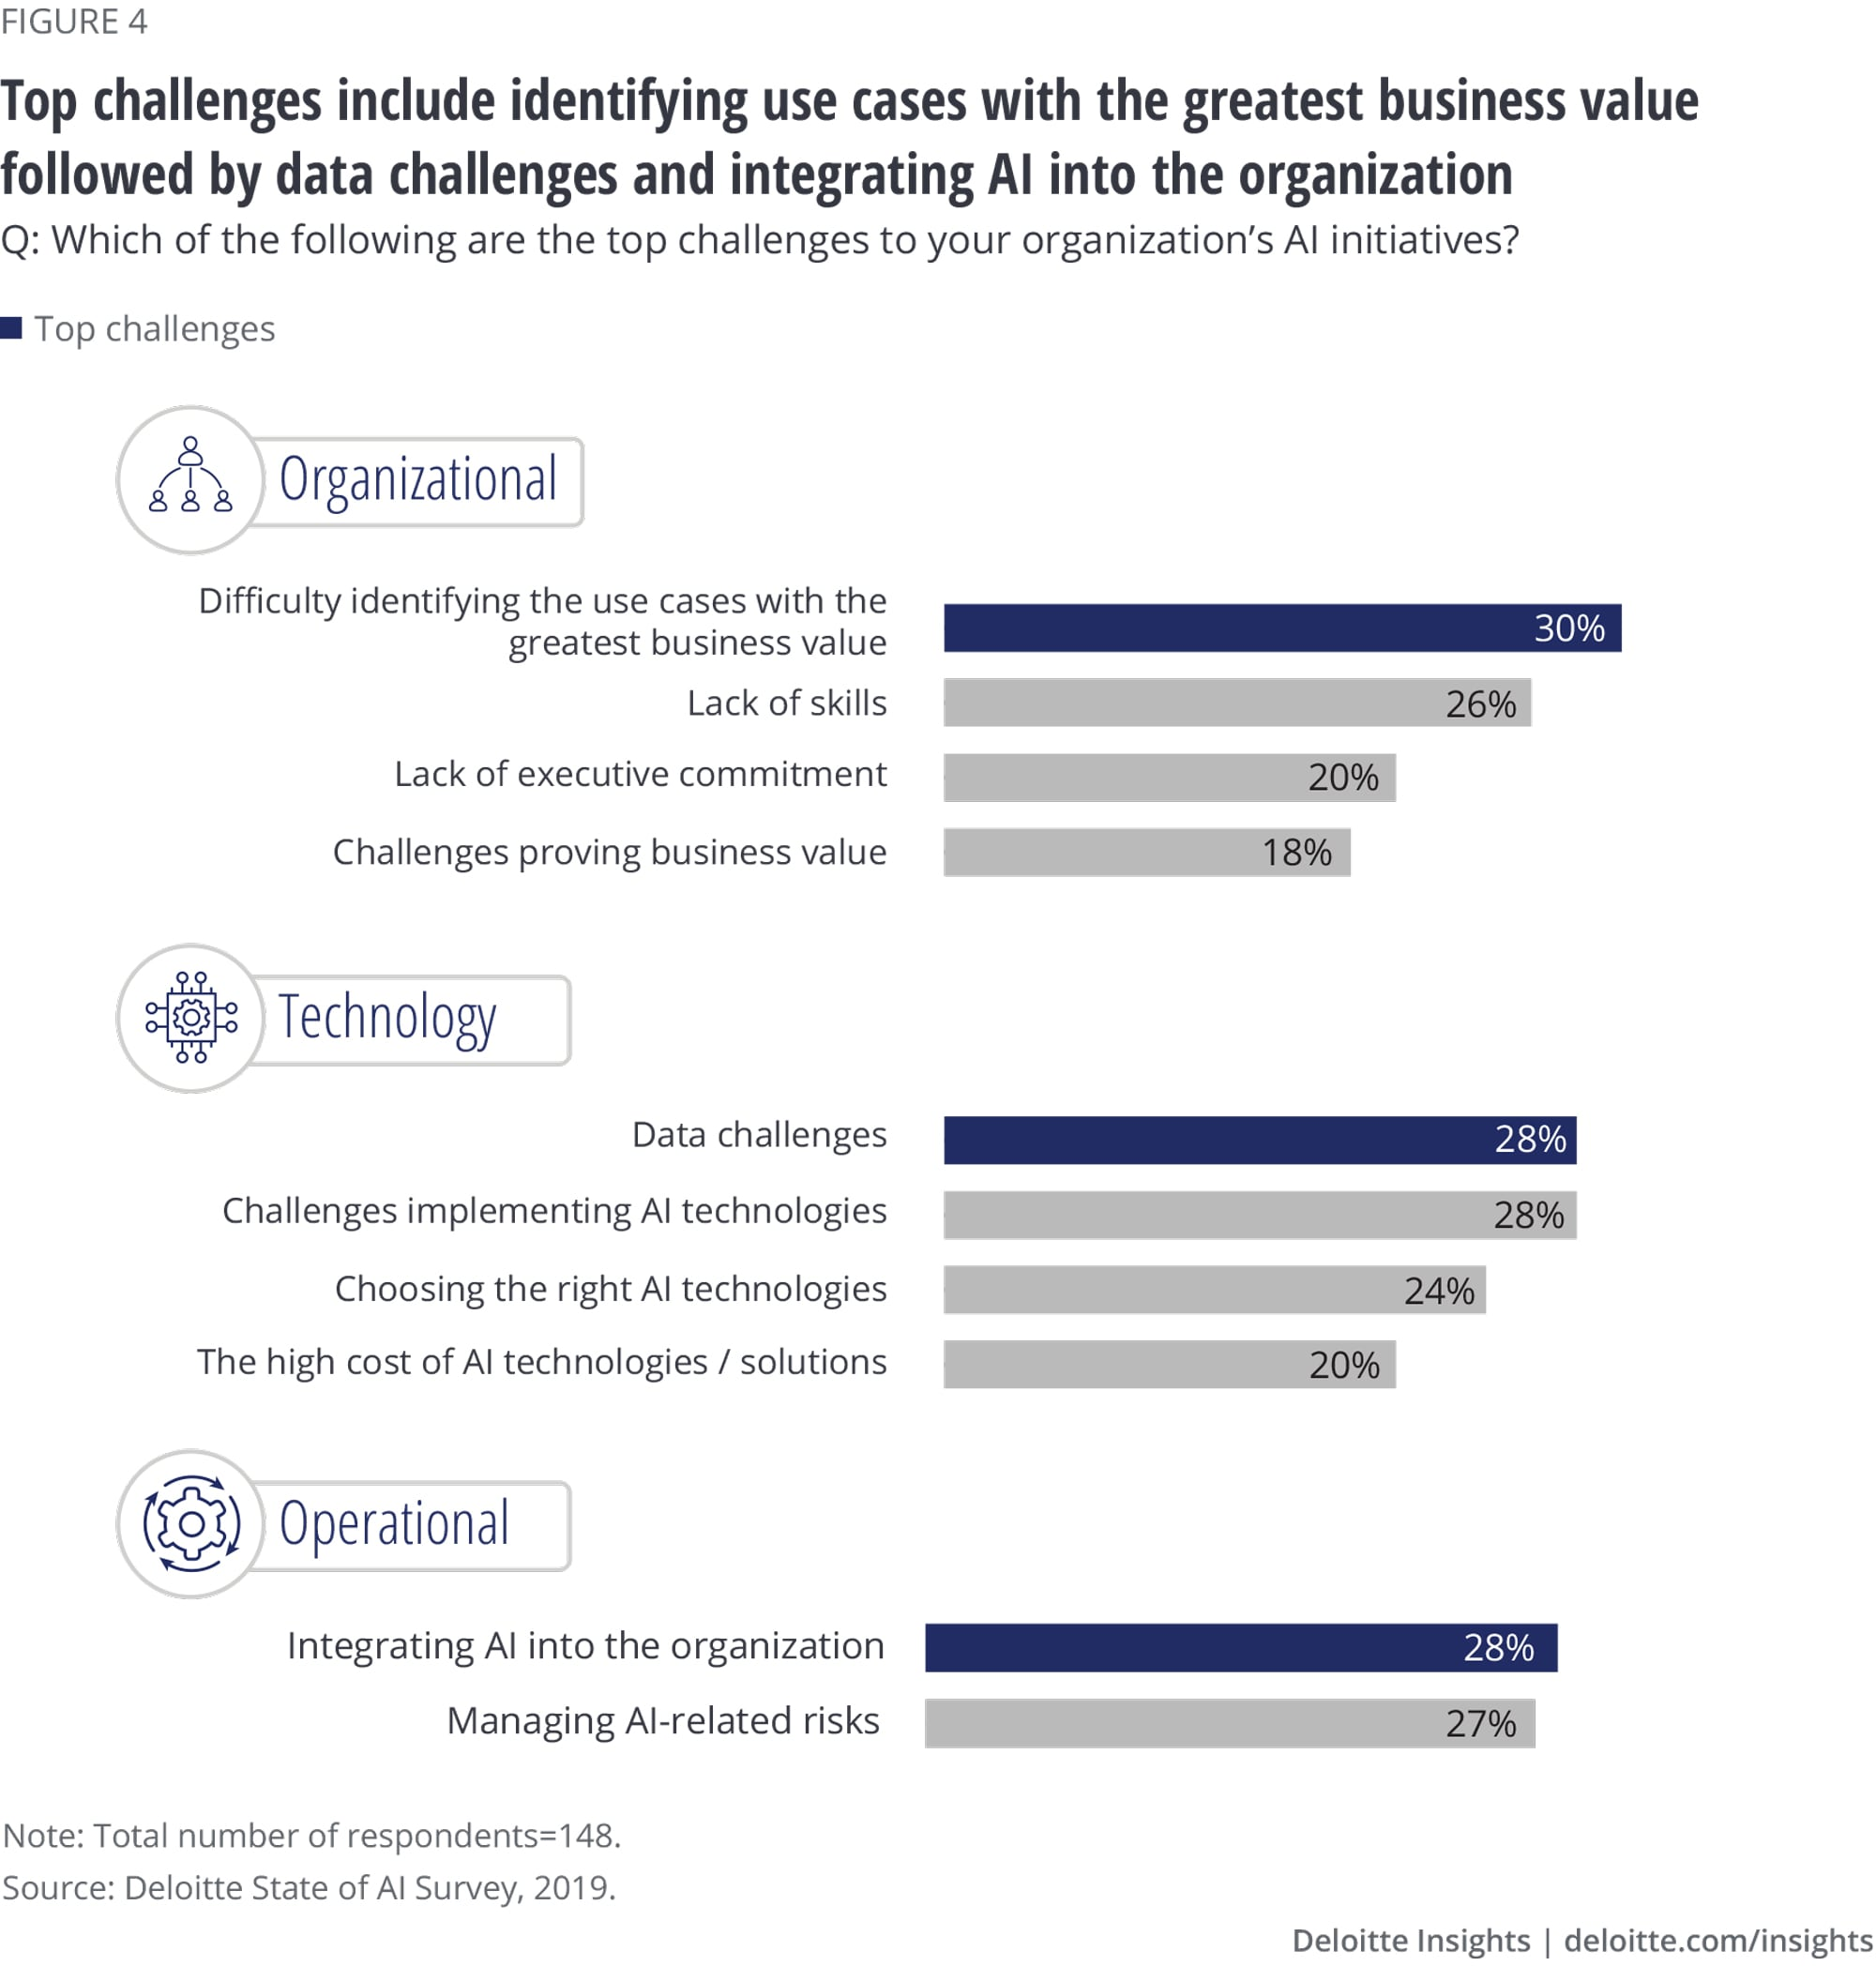 Identifying use cases with the greatest business value followed by data challenges and integrating AI into the organization are top challenges